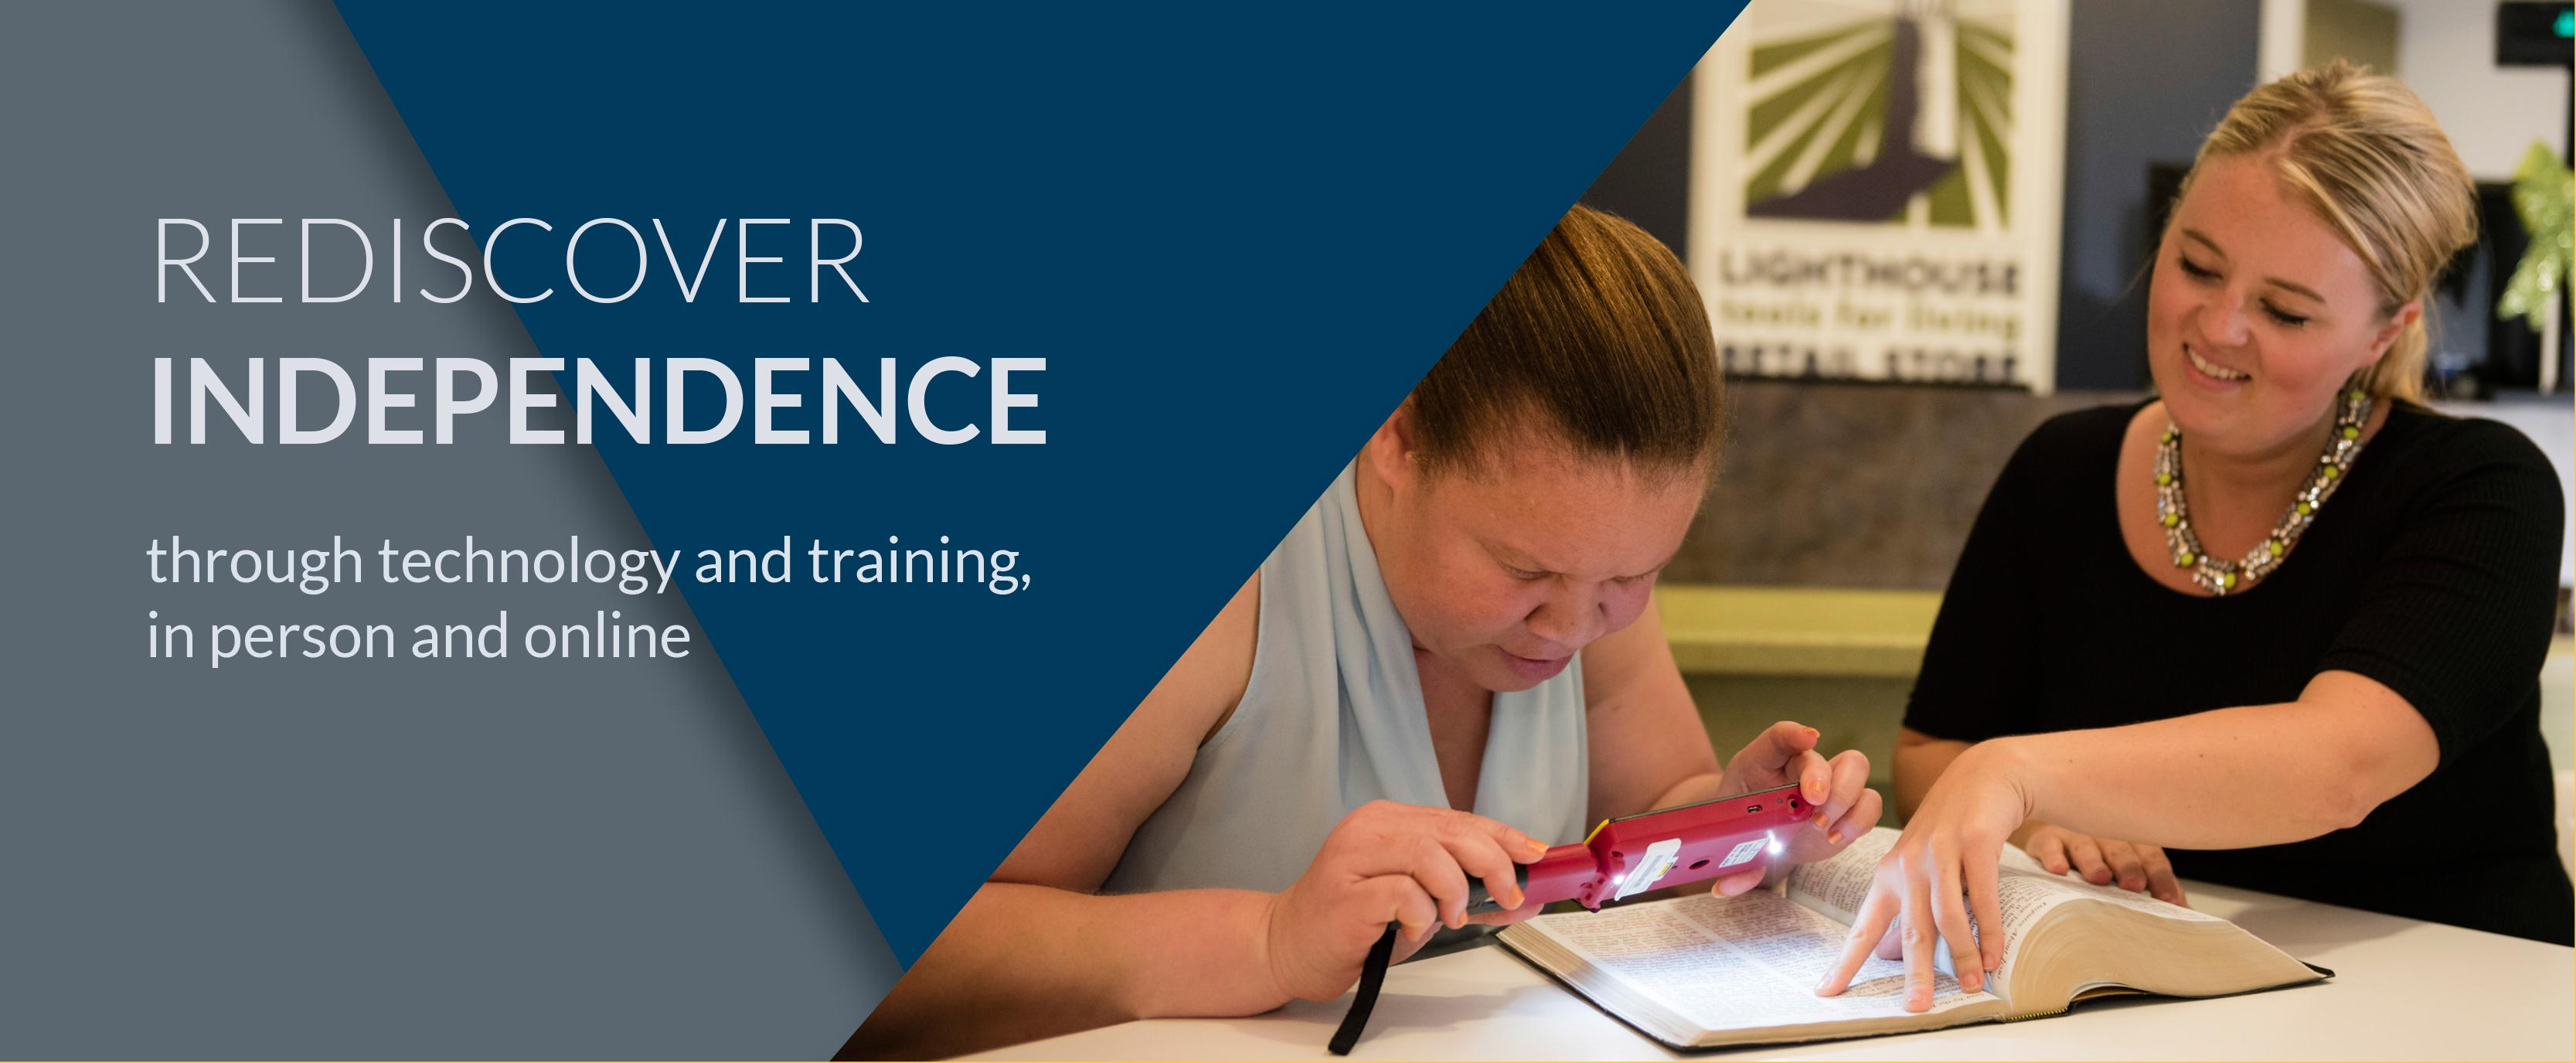 Rediscover independence through technology and training, in person and online